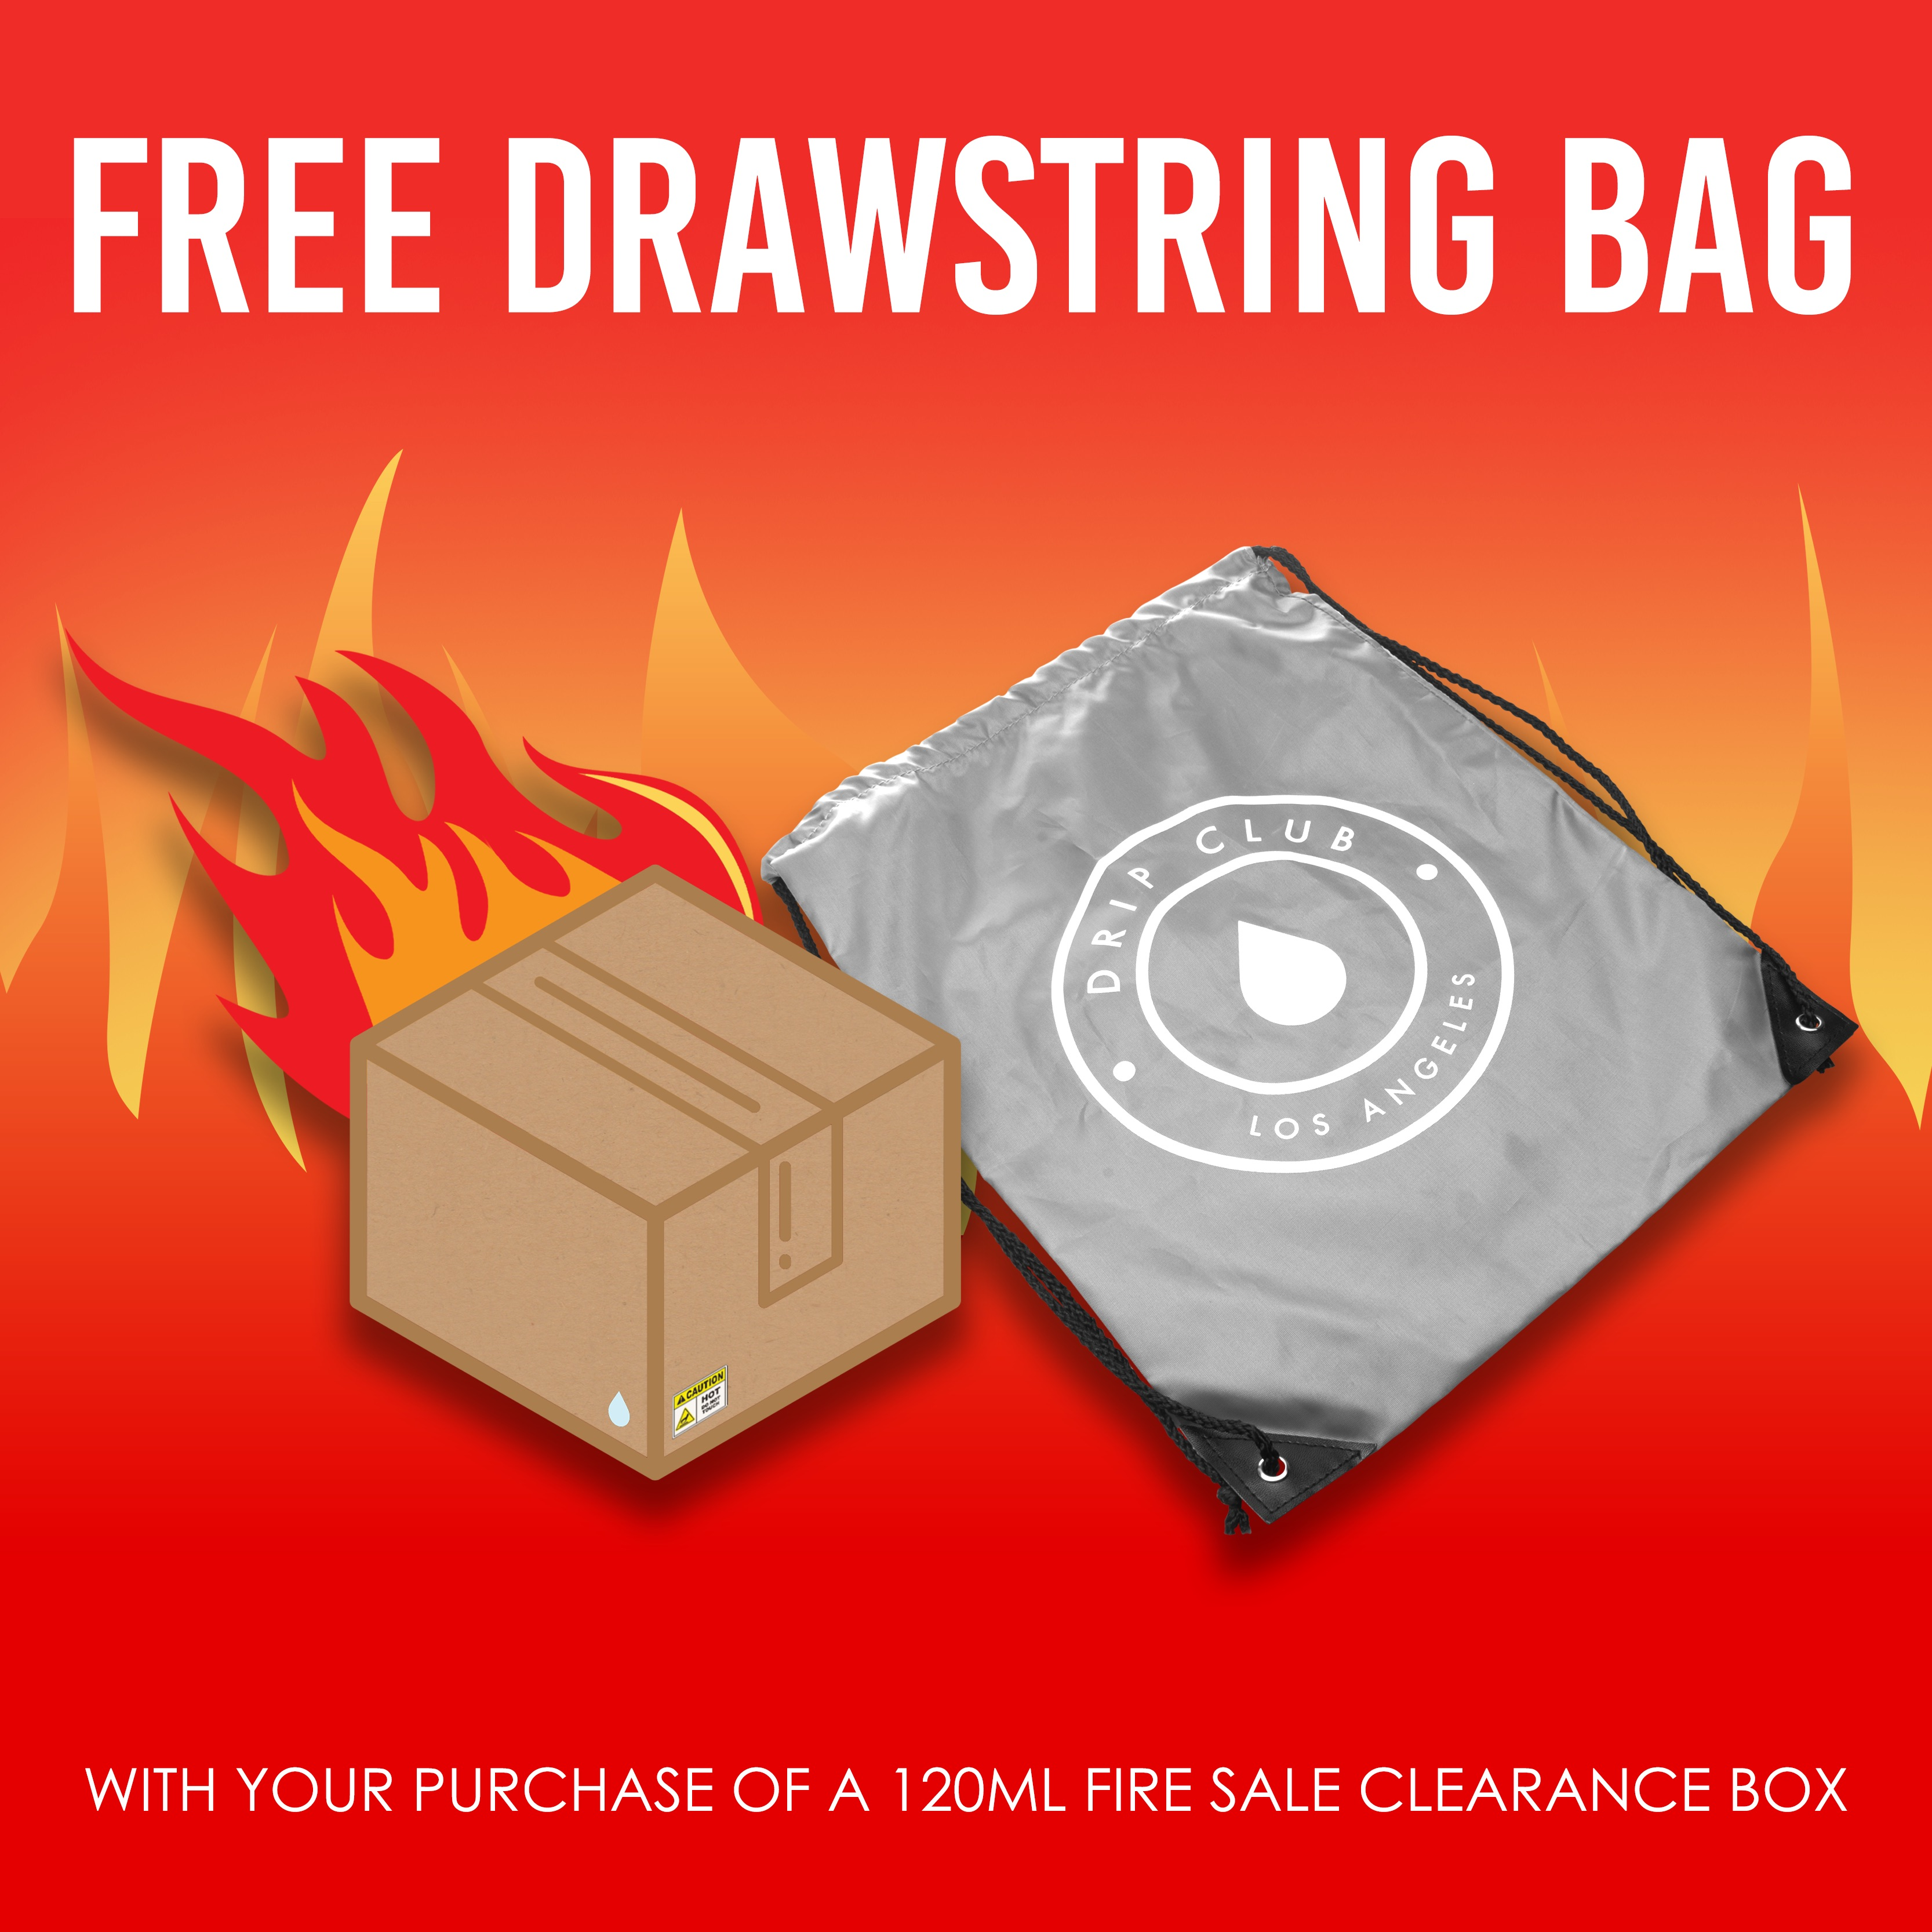 FIRE SALE PACK w/ FREE Drawstring Bag - 120 mL FOR AS LOW AS $14.95! Photo